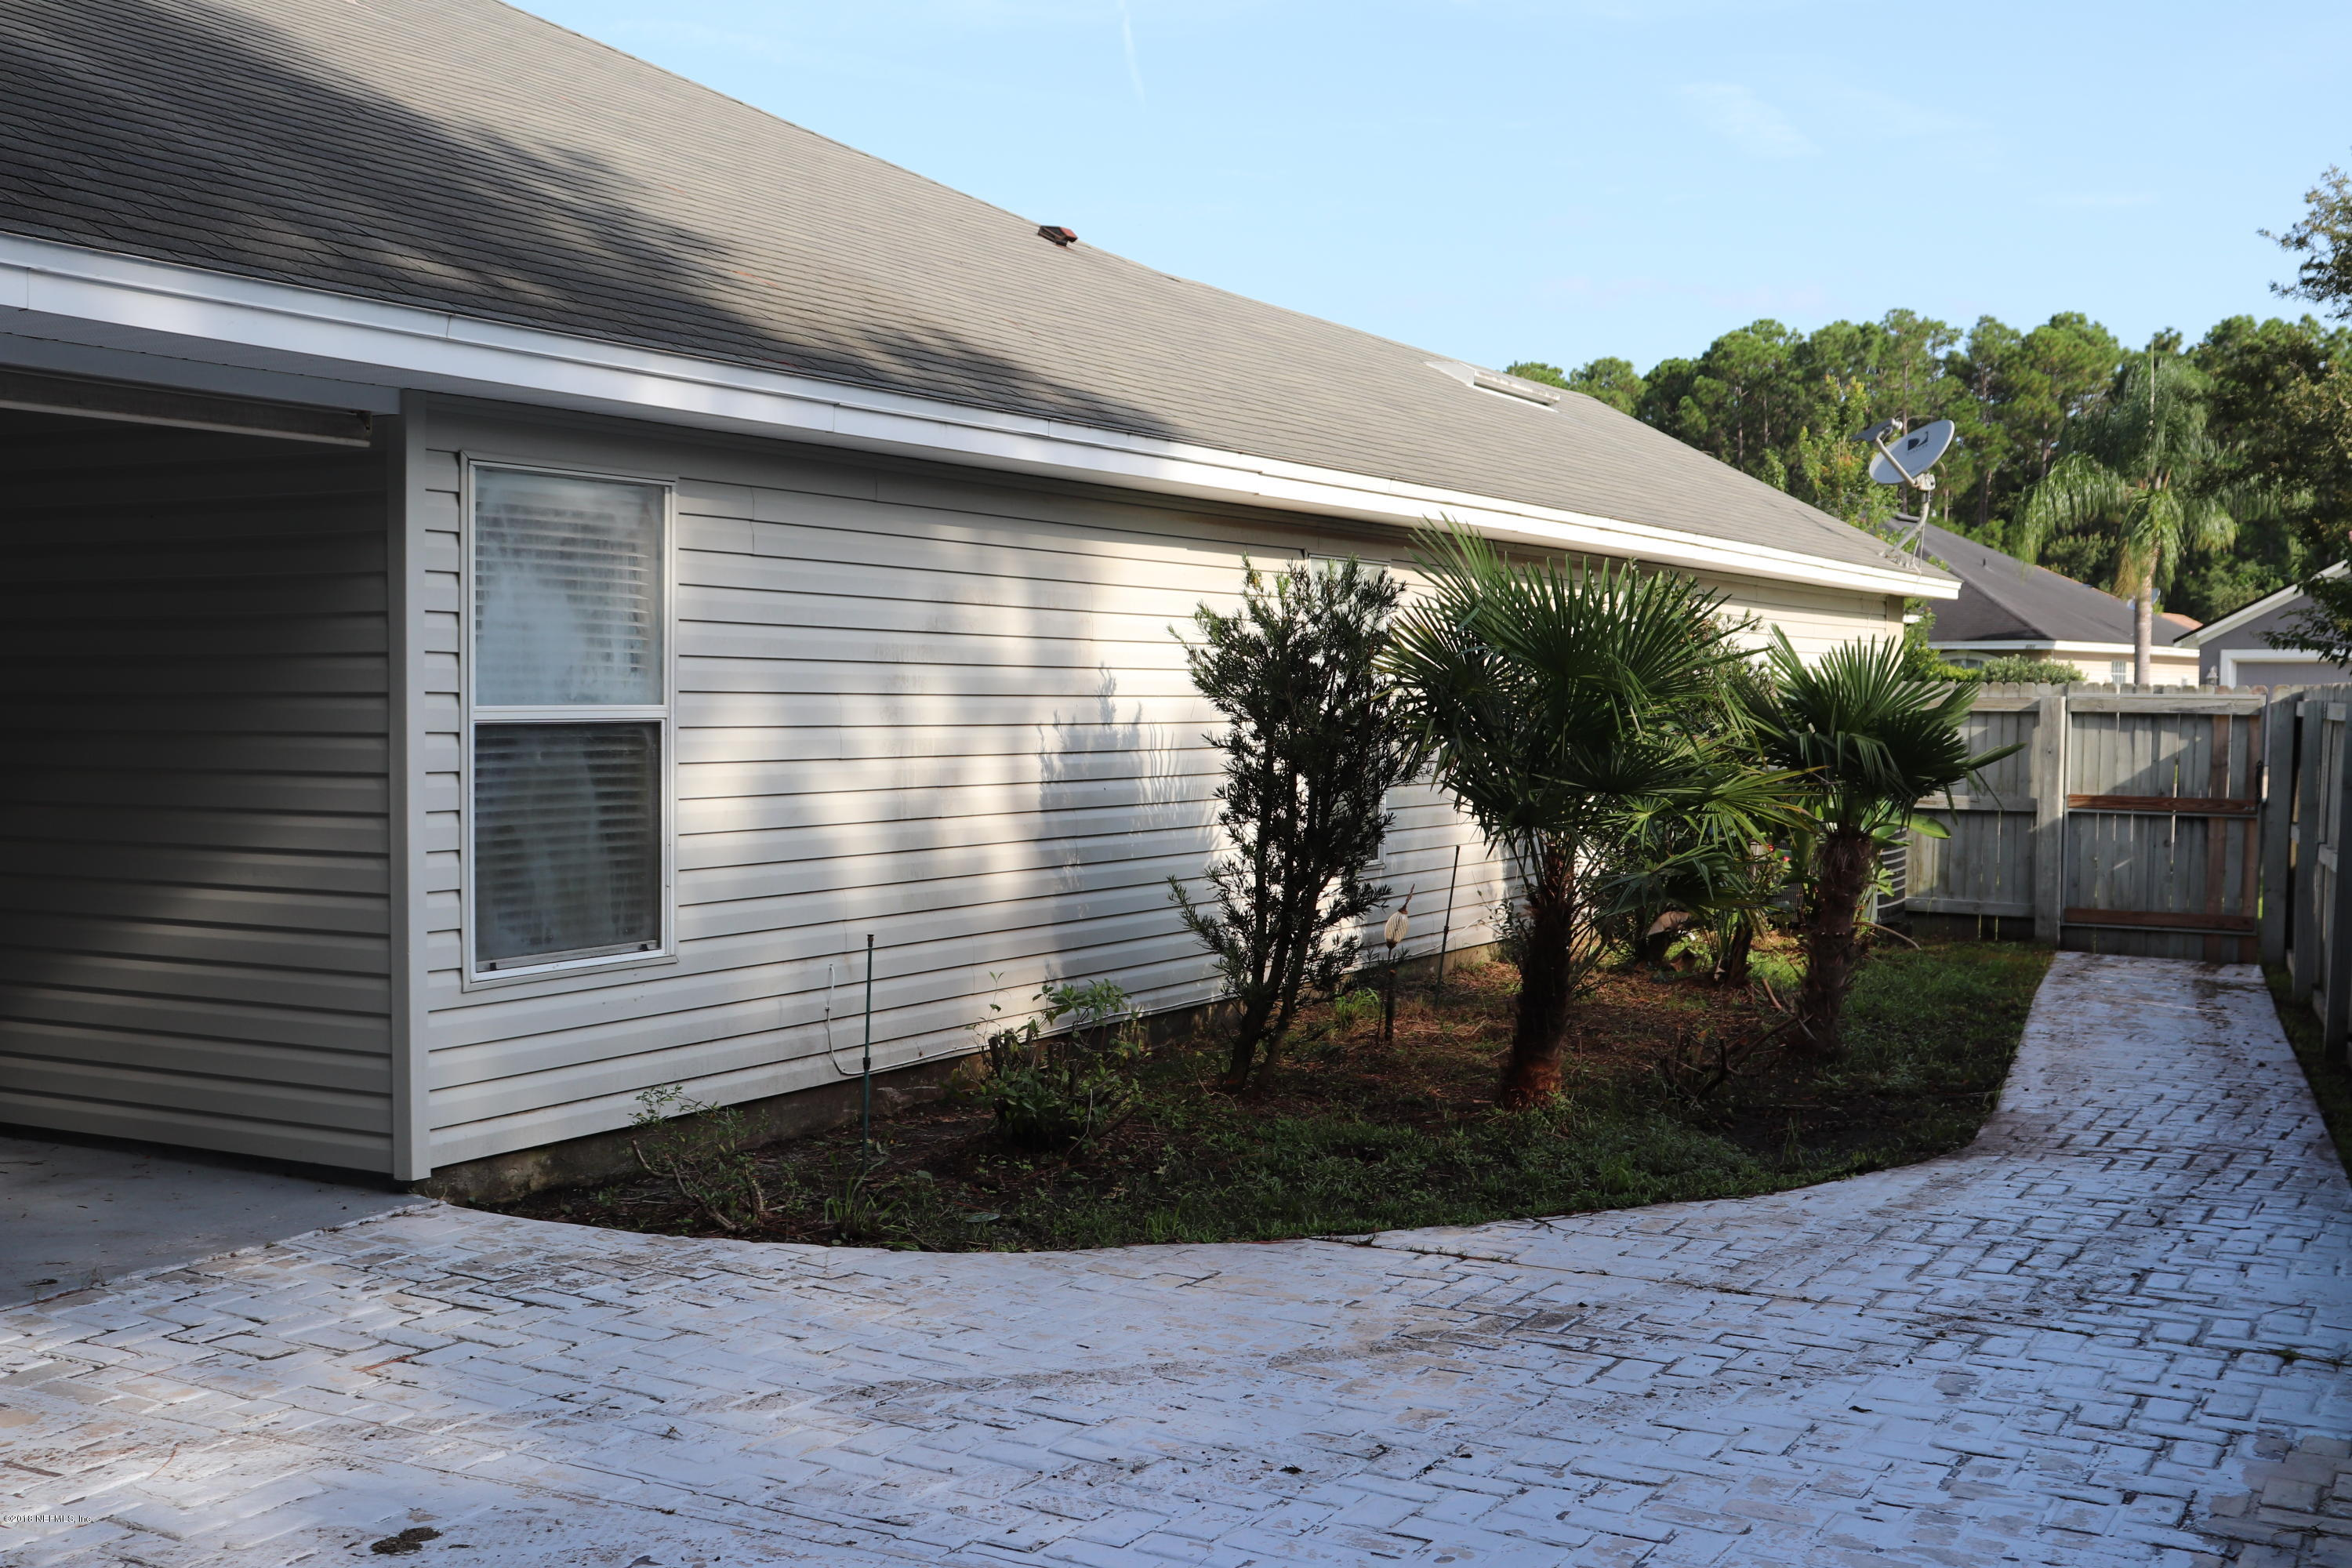 654 BONAPARTE, JACKSONVILLE, FLORIDA 32218, 3 Bedrooms Bedrooms, ,2 BathroomsBathrooms,Residential - single family,For sale,BONAPARTE,942160